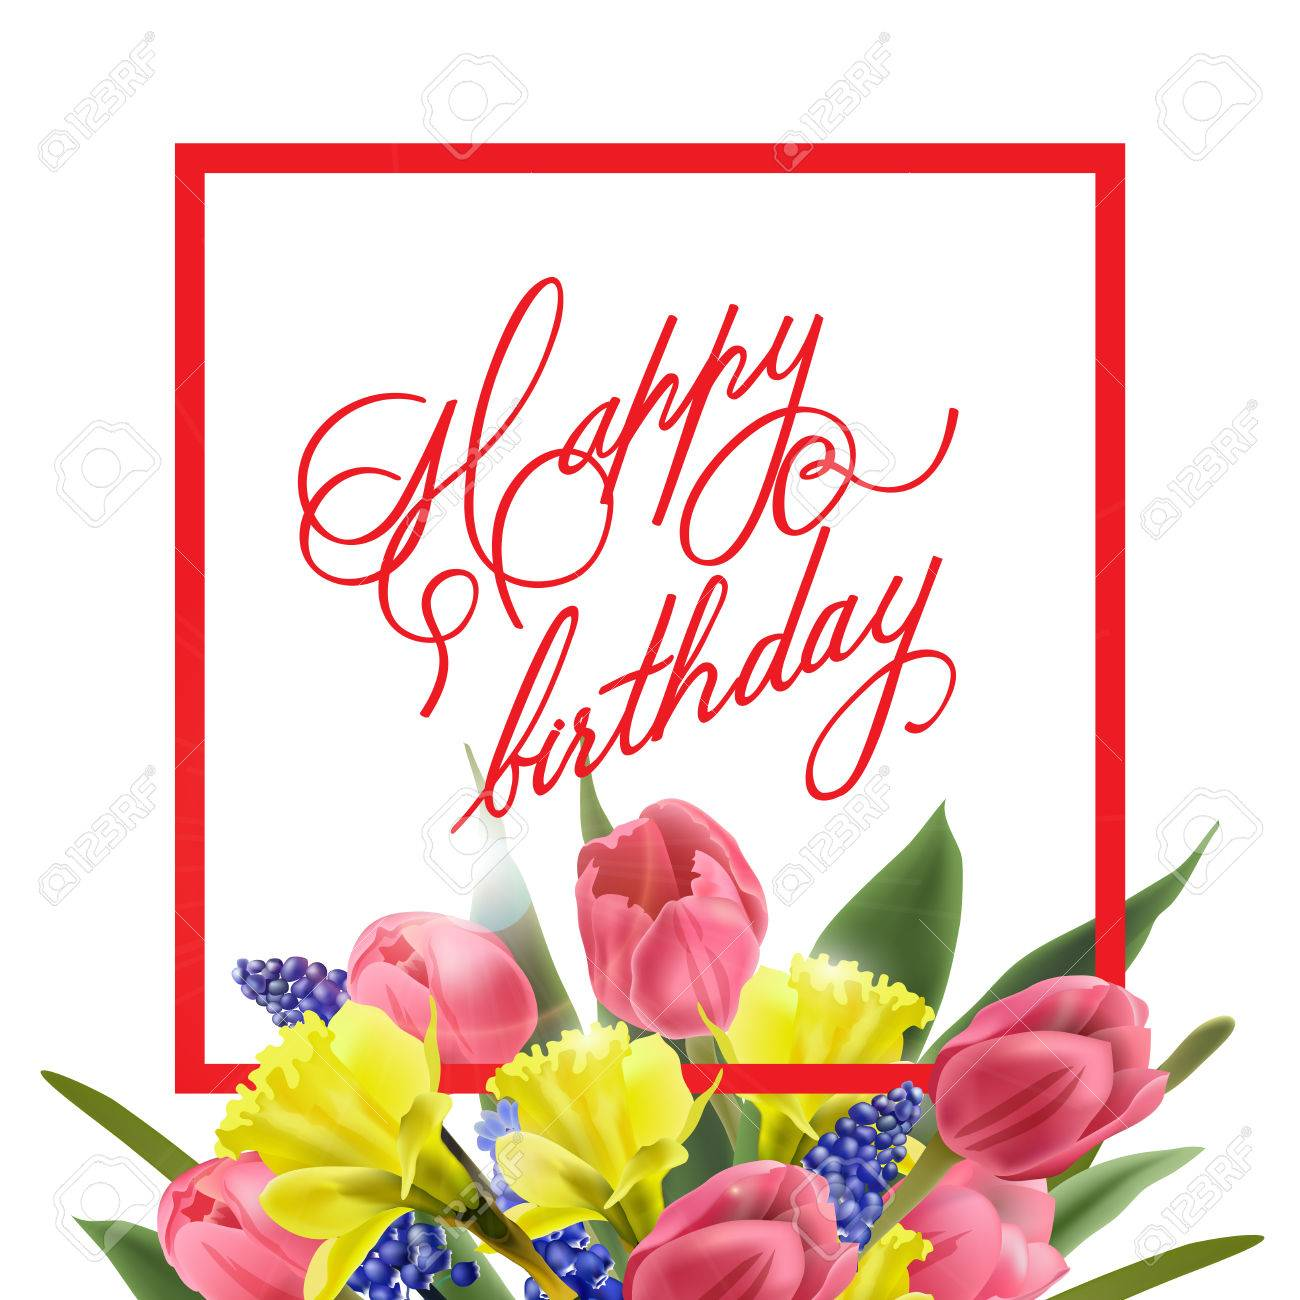 Happy Birthday Card With With Spring Flowers Tulips Daffodils